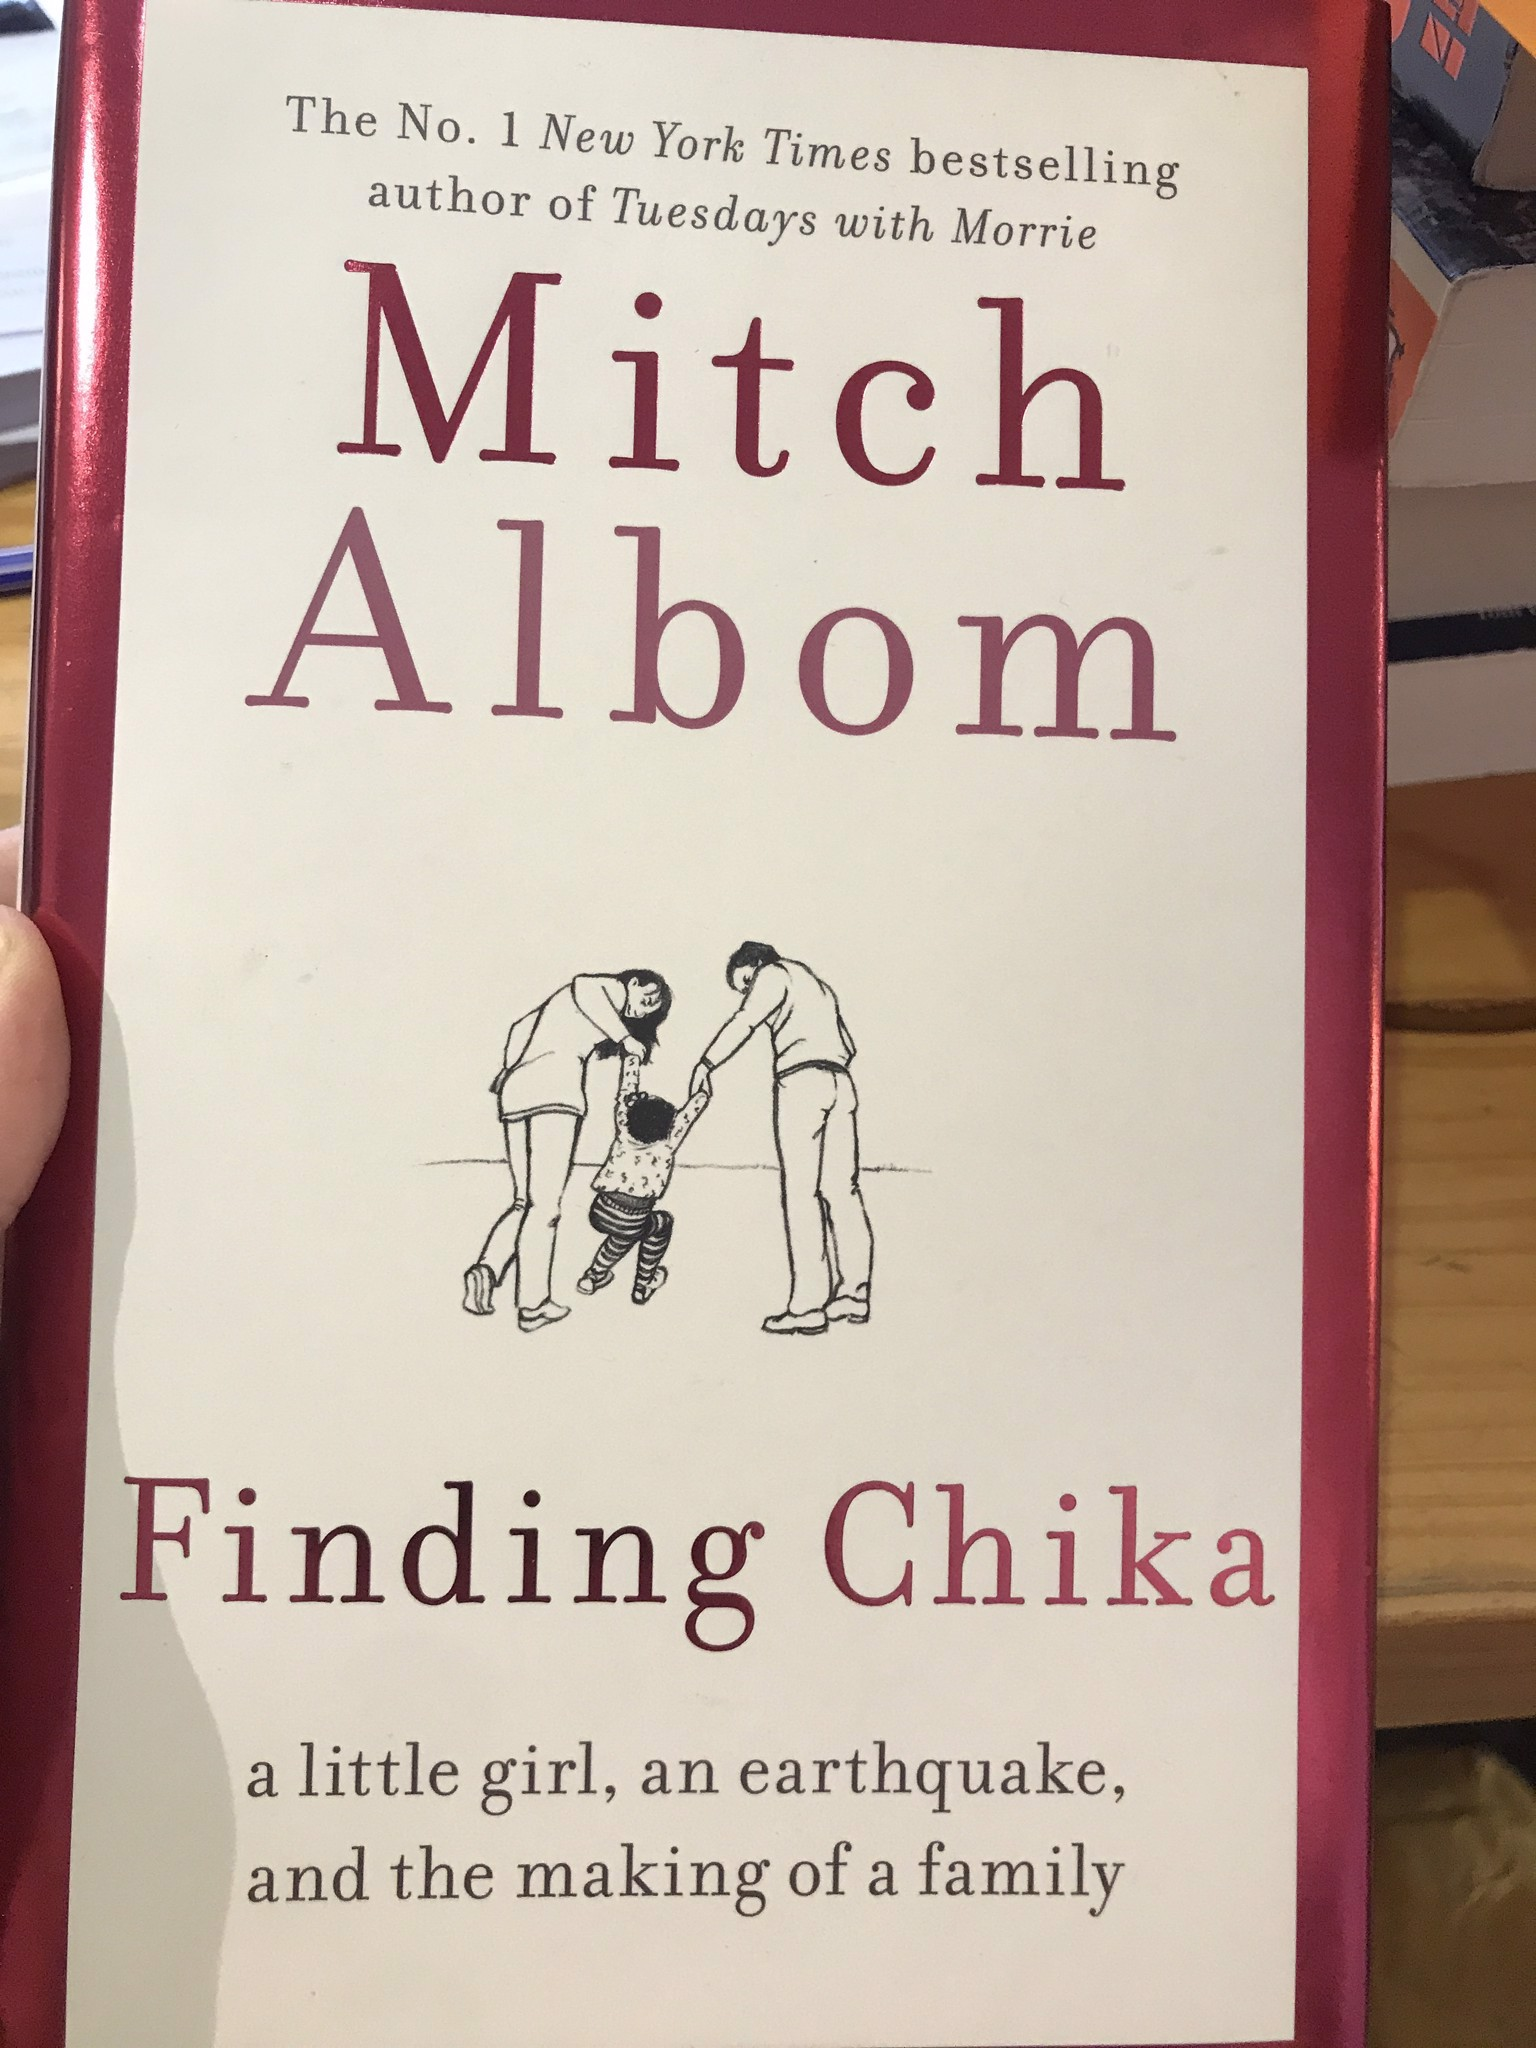 Finding Chika by Mitch Albom